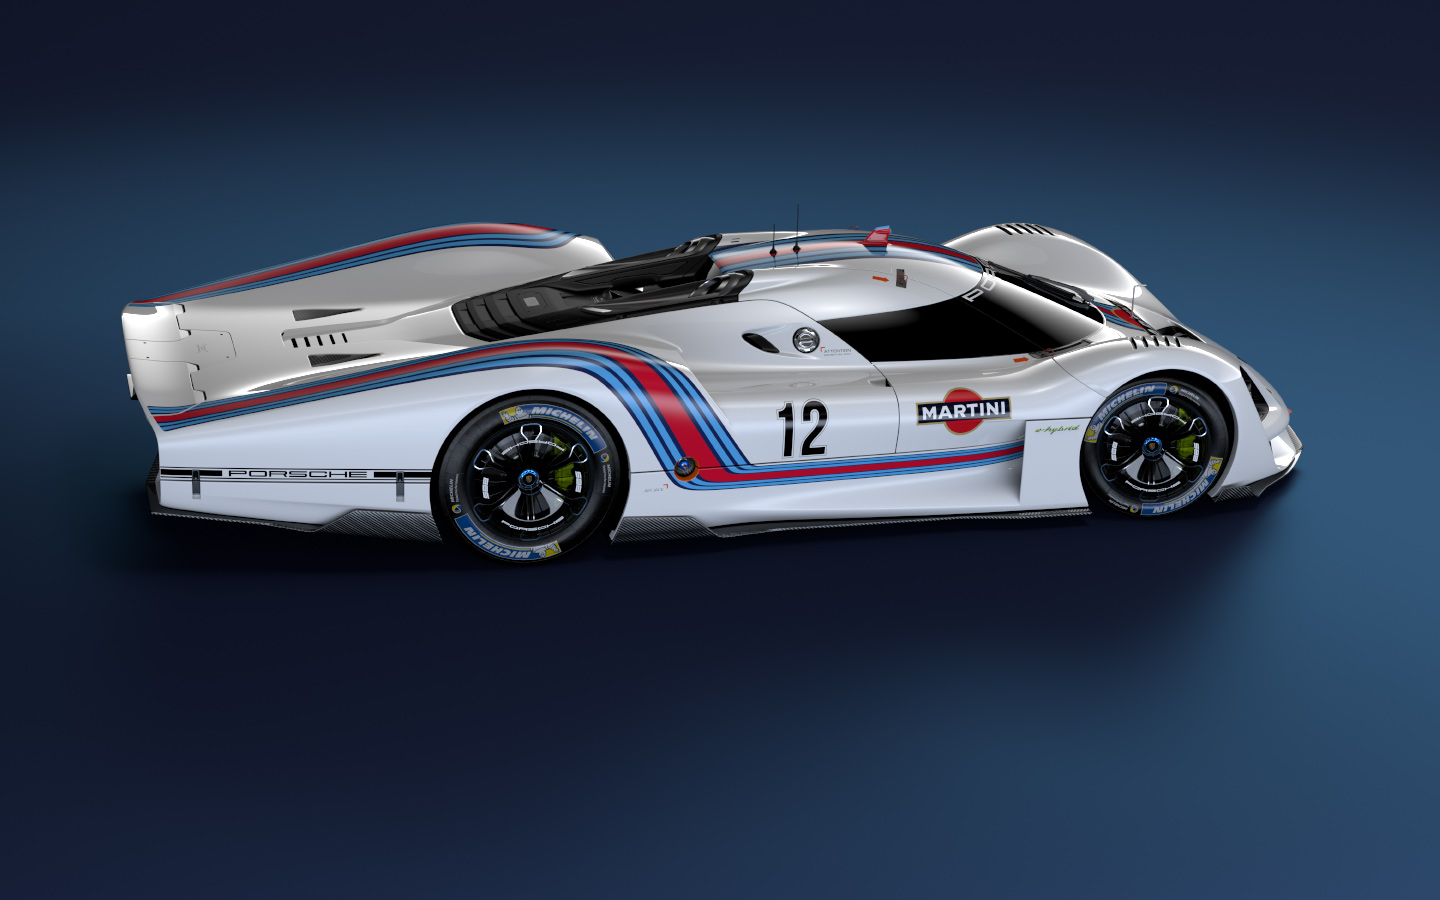 Porsche Vision GT Comes to Life as 908 LH Reincarnation - GTspirit on vision mazda gt, vision ford gt, vision toyota gt, vision nissan gt,